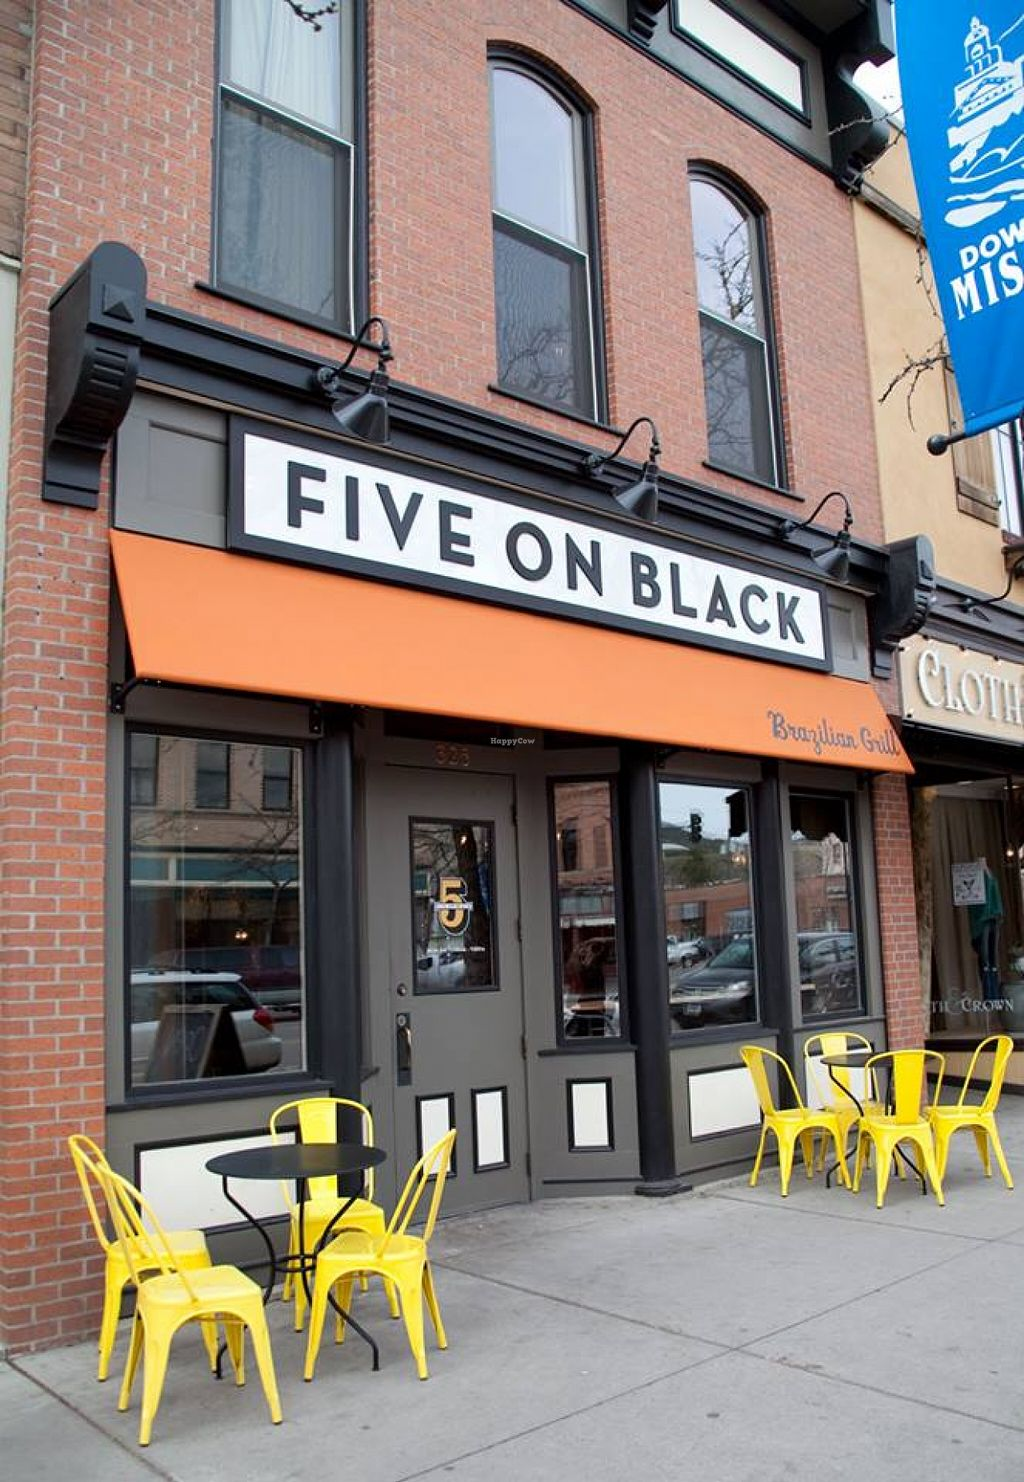 """Photo of Five on Black - Downtown  by <a href=""""/members/profile/community"""">community</a> <br/>inside Five on Black - Downtown   <br/> February 1, 2016  - <a href='/contact/abuse/image/68677/134631'>Report</a>"""